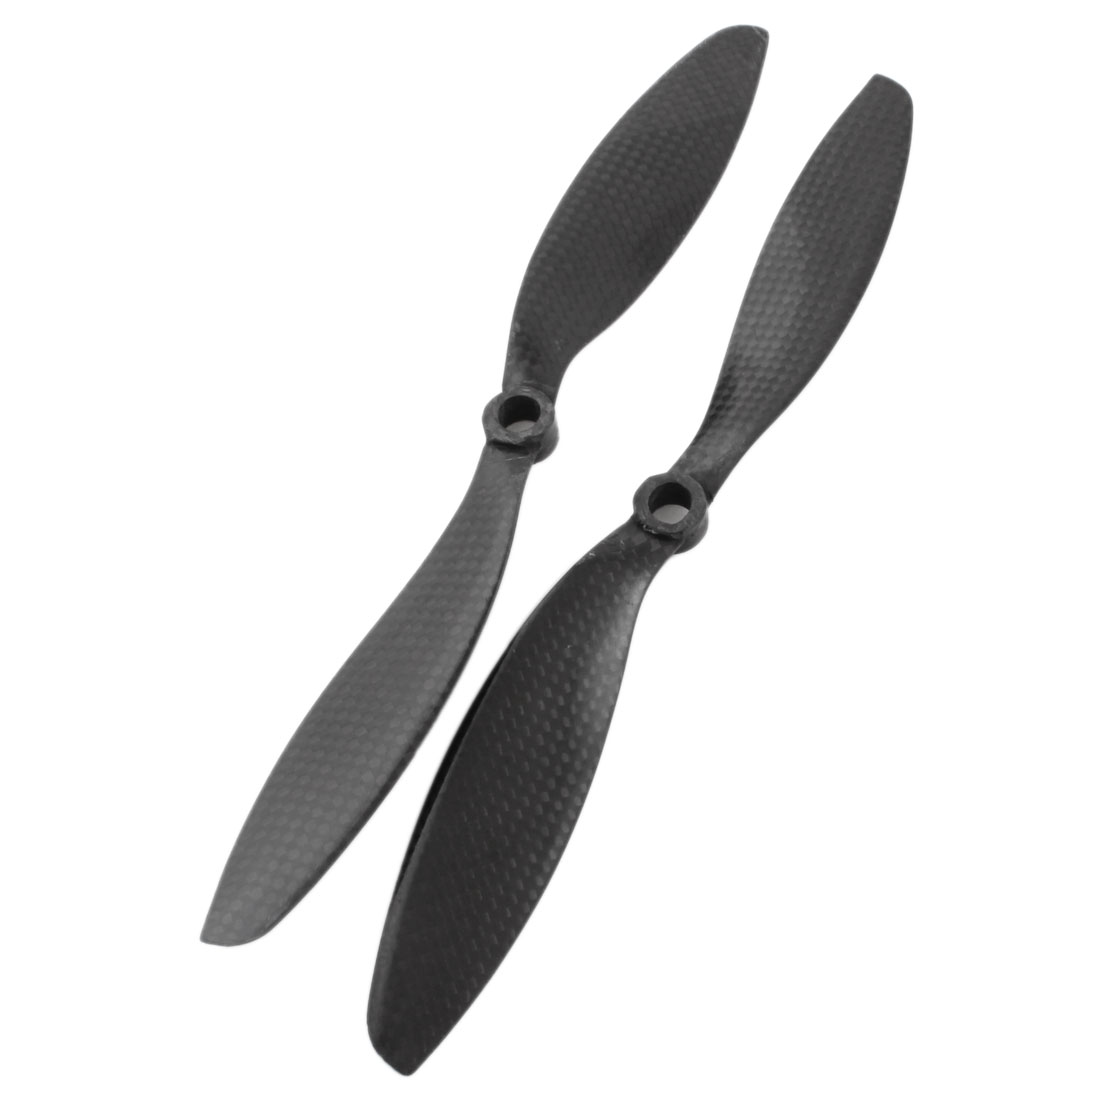 Pair 9047 9x4.7 2-Vane Carbon Fiber CW/CCW Prop for 8mm Shaft RC DJI Phantom Multicopter